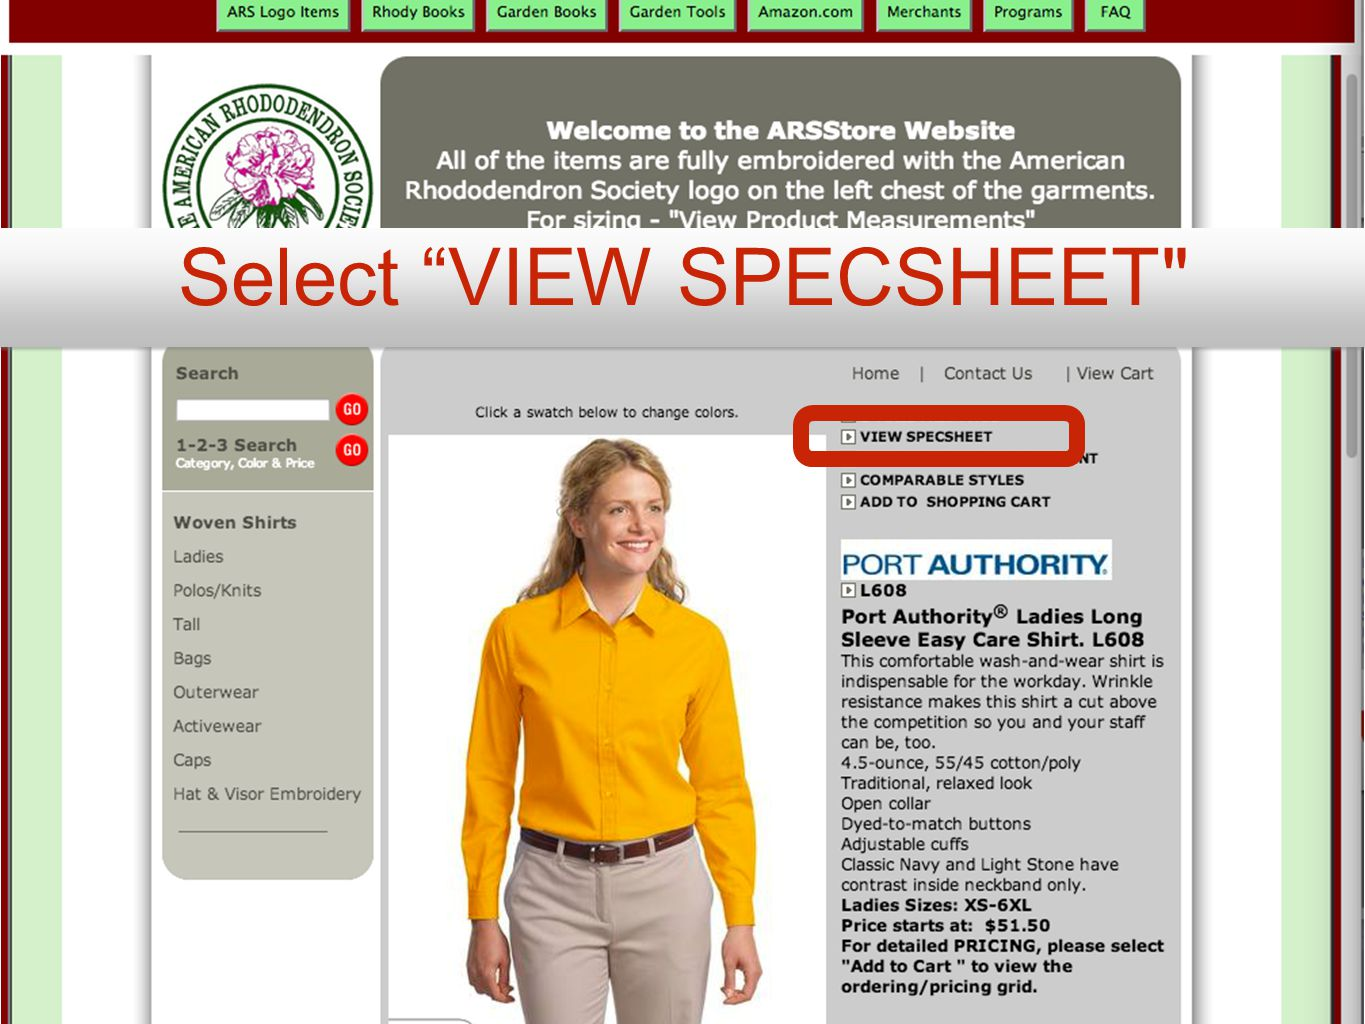 Select VIEW SPECSHEET